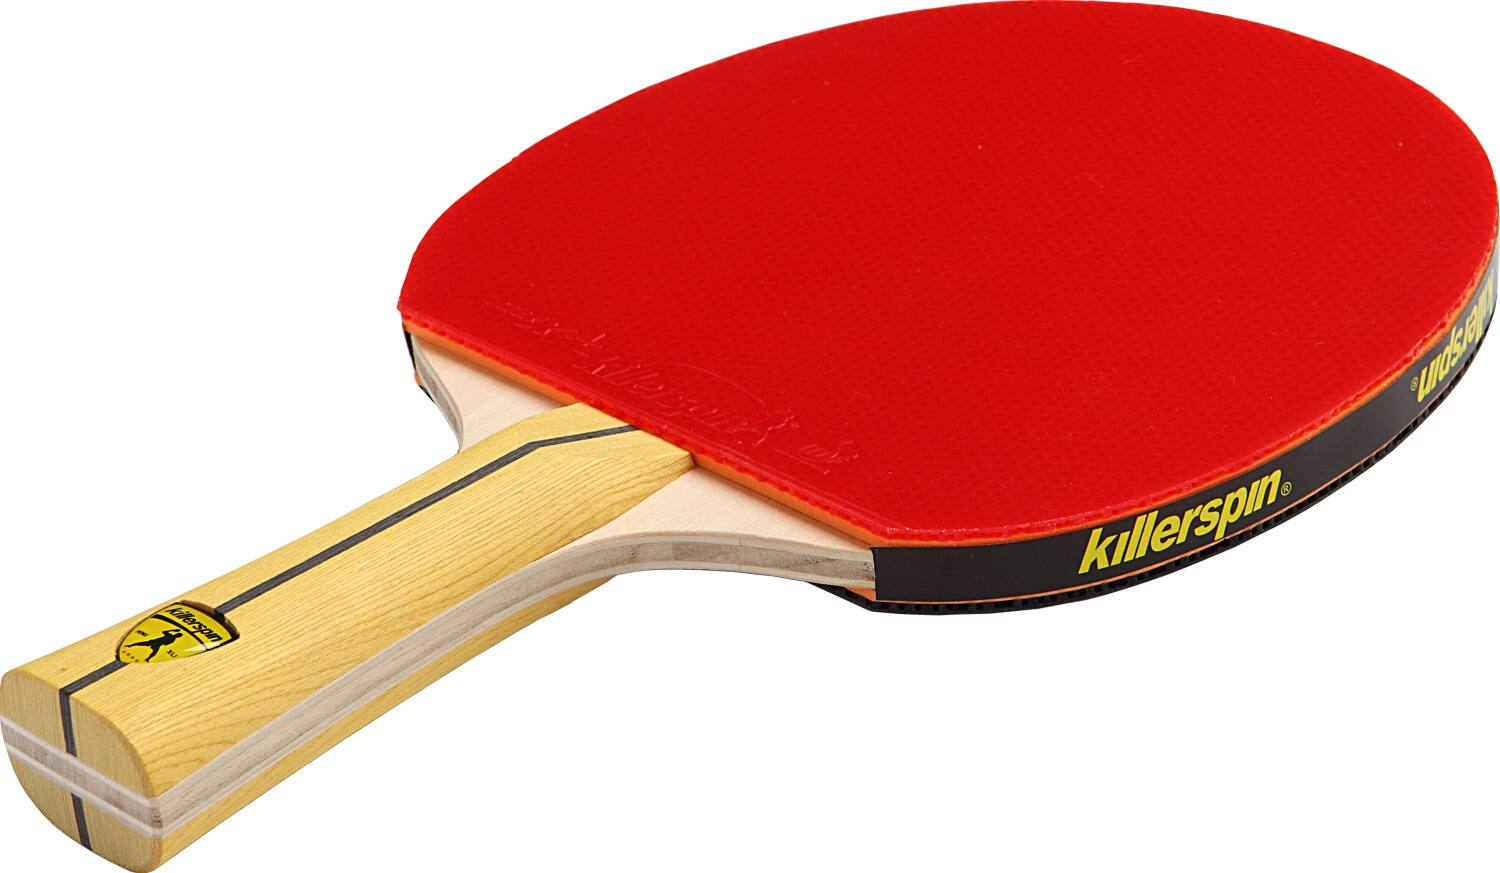 Killerspin Jet400 Table Tennis Paddle Slickdeals Net